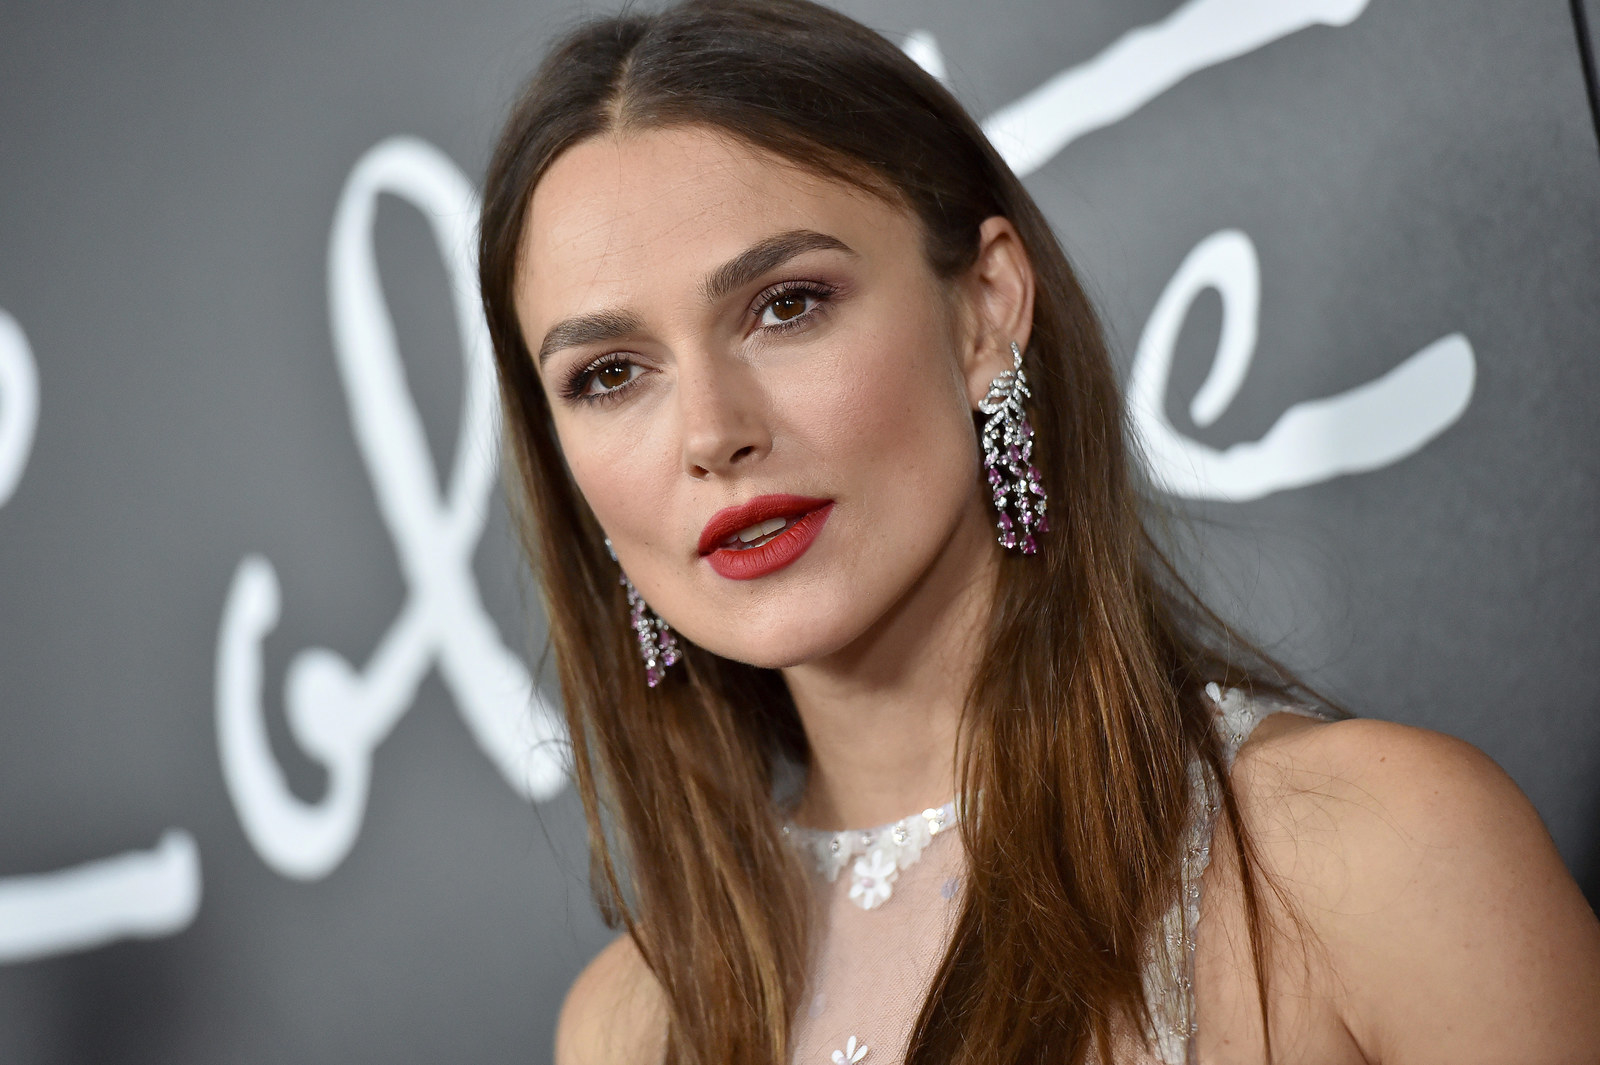 And on March 26, Keira Knightley will be turning 34.